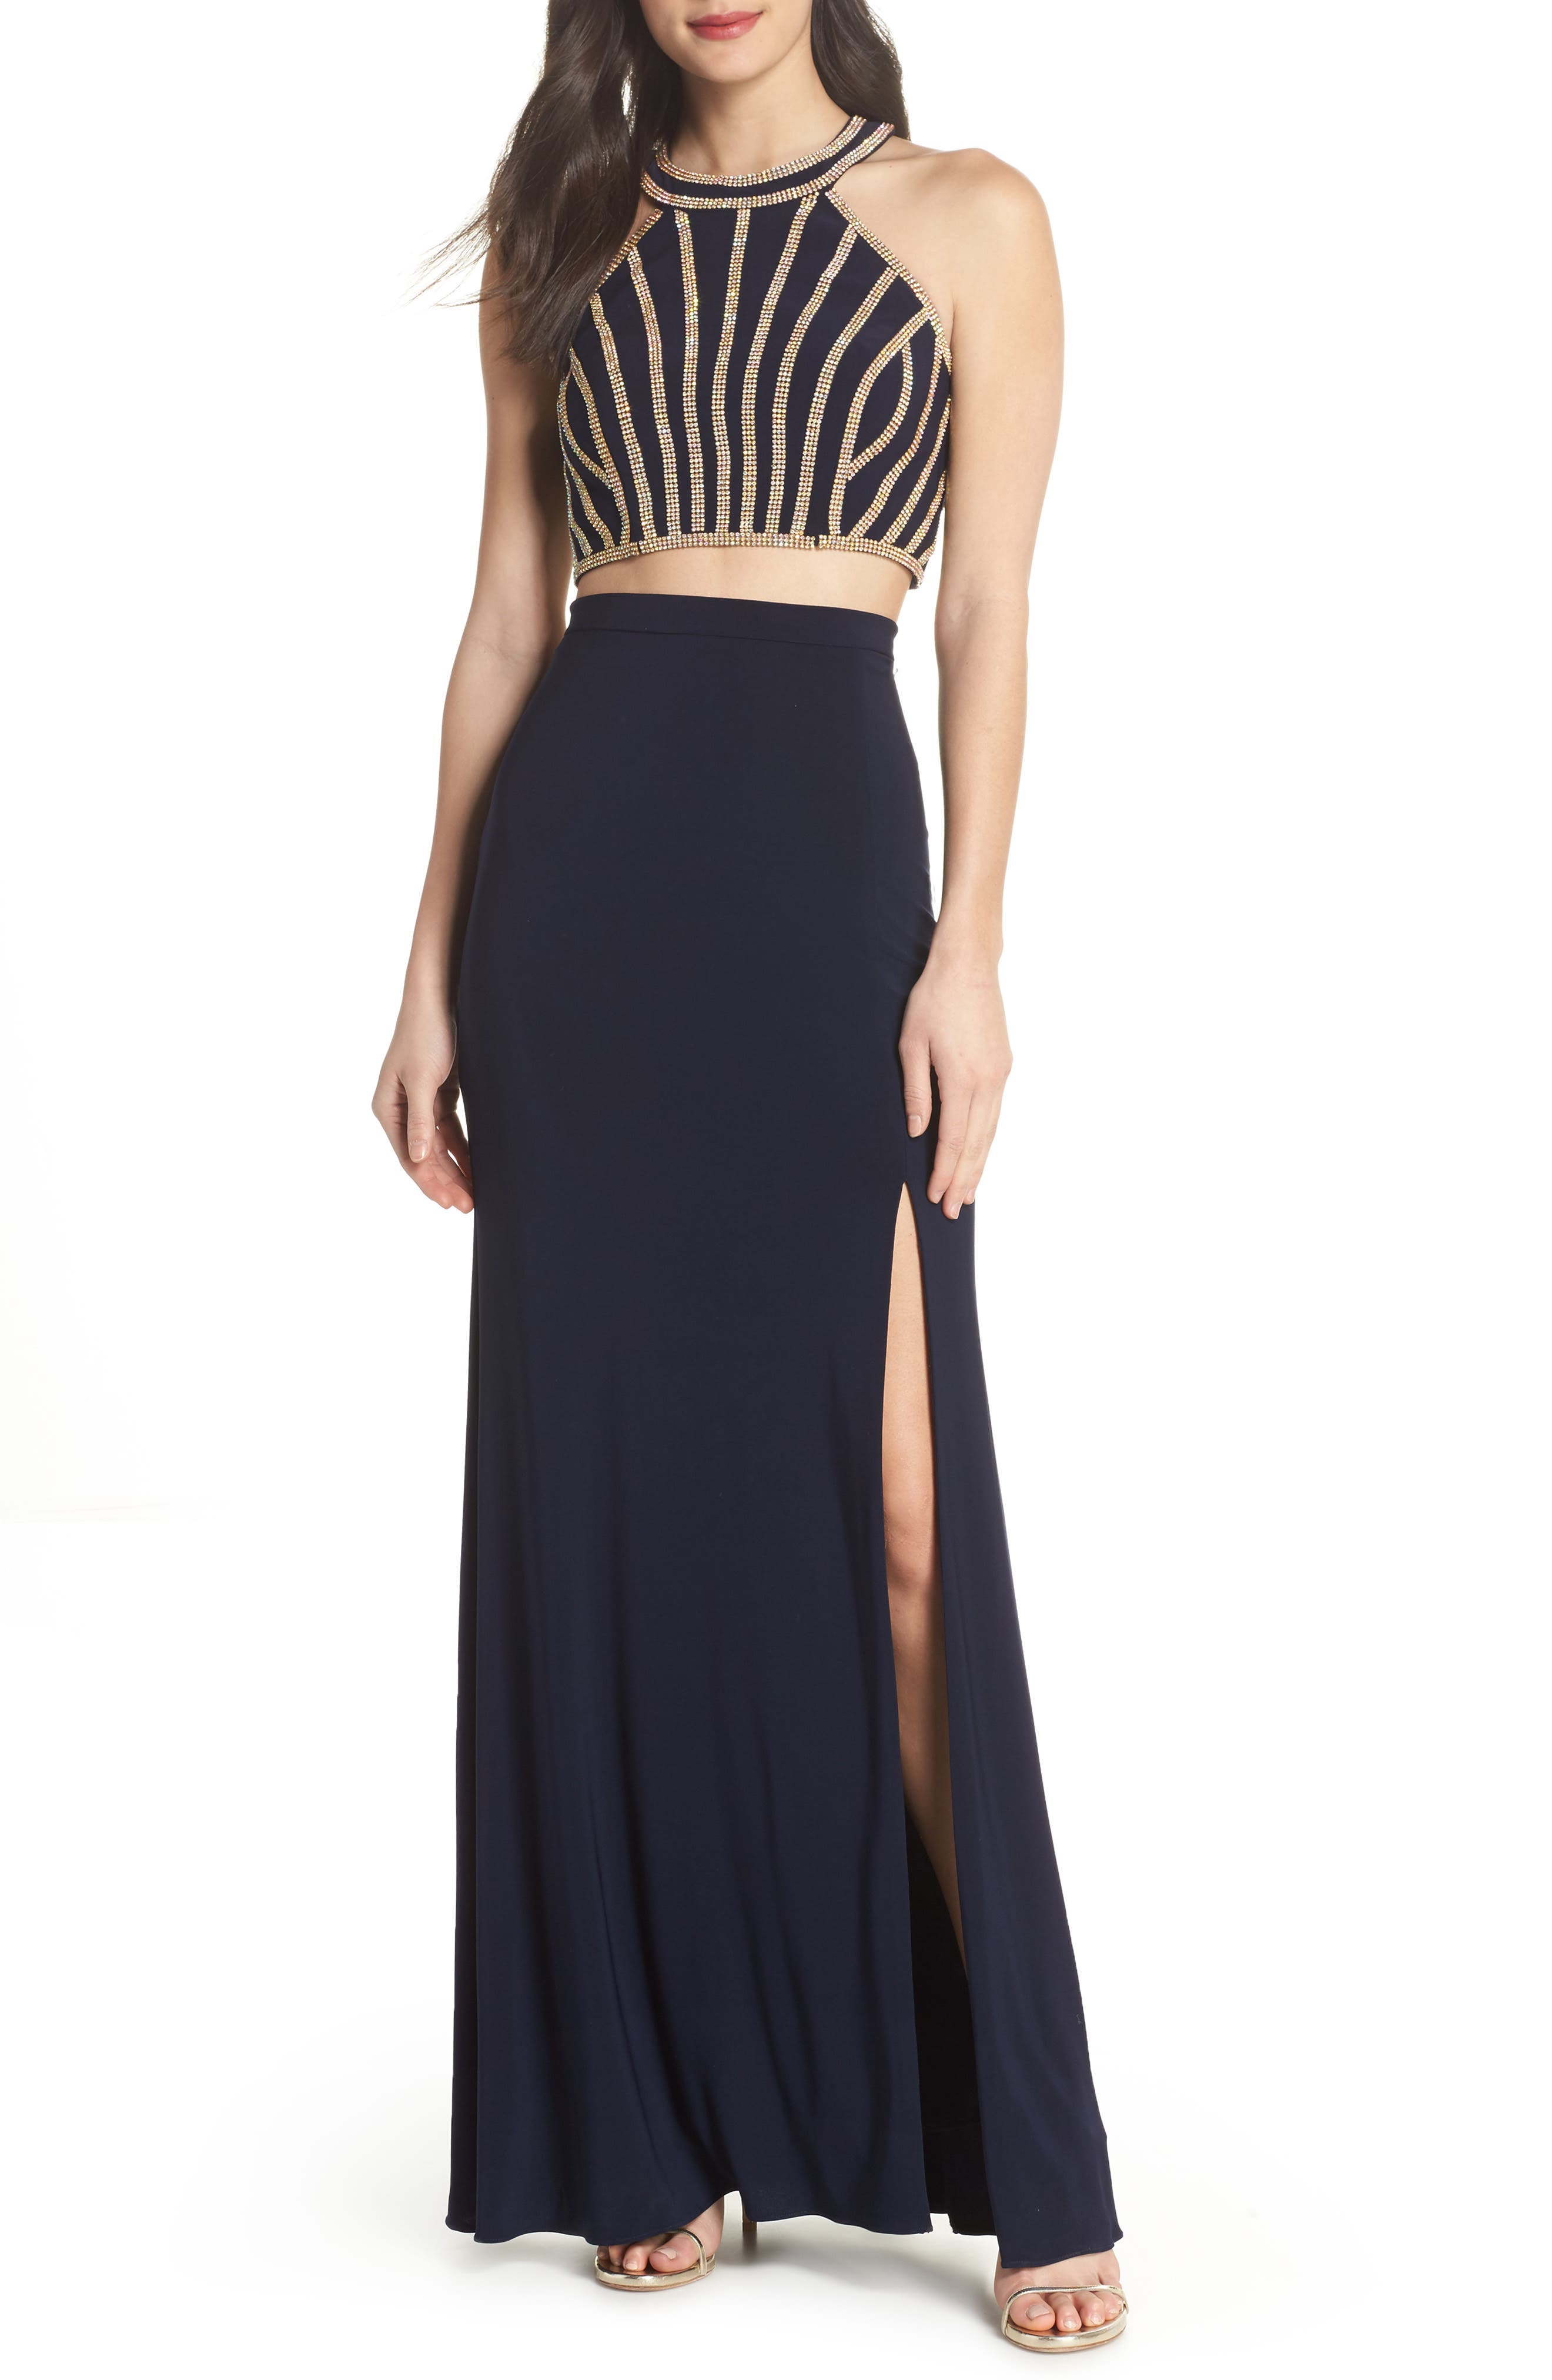 Beaded Top Two-Piece Dress,                         Main,                         color, Navy/ Gold